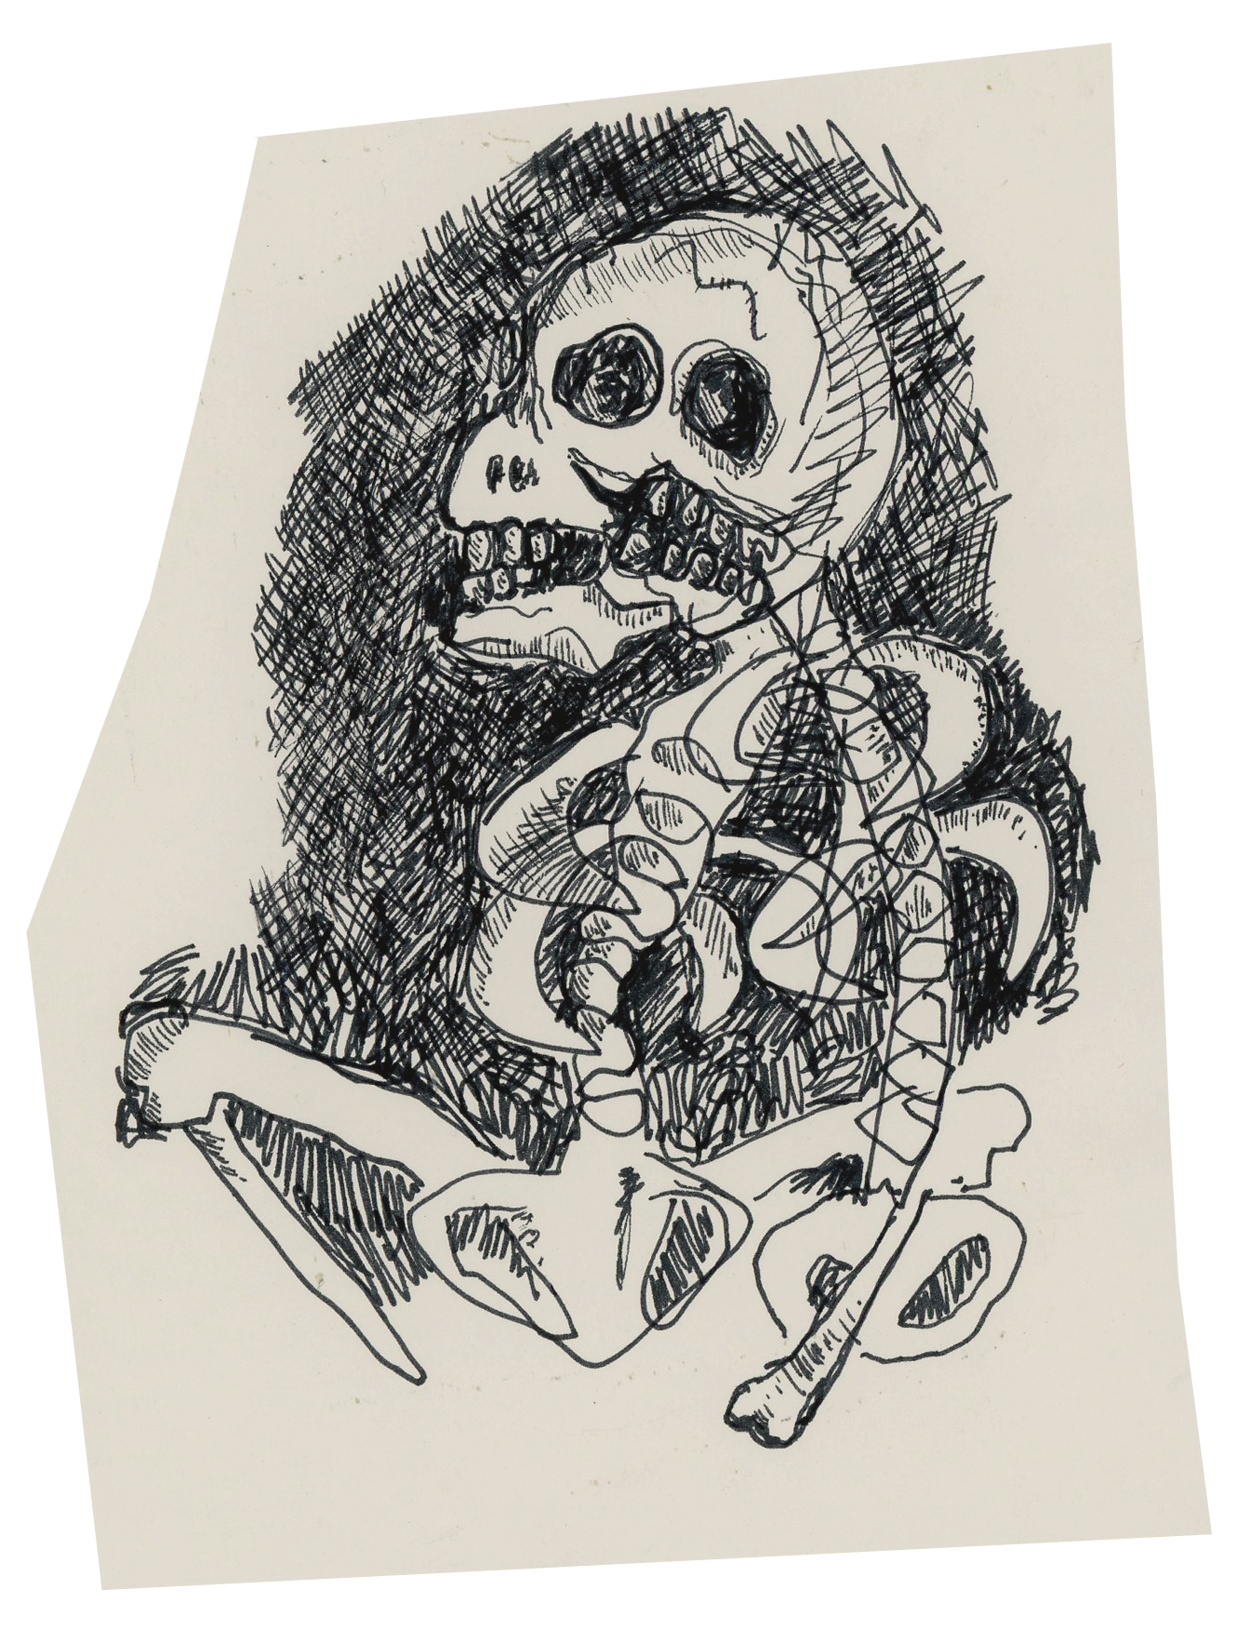 Skeleton / Deformed Man, undated